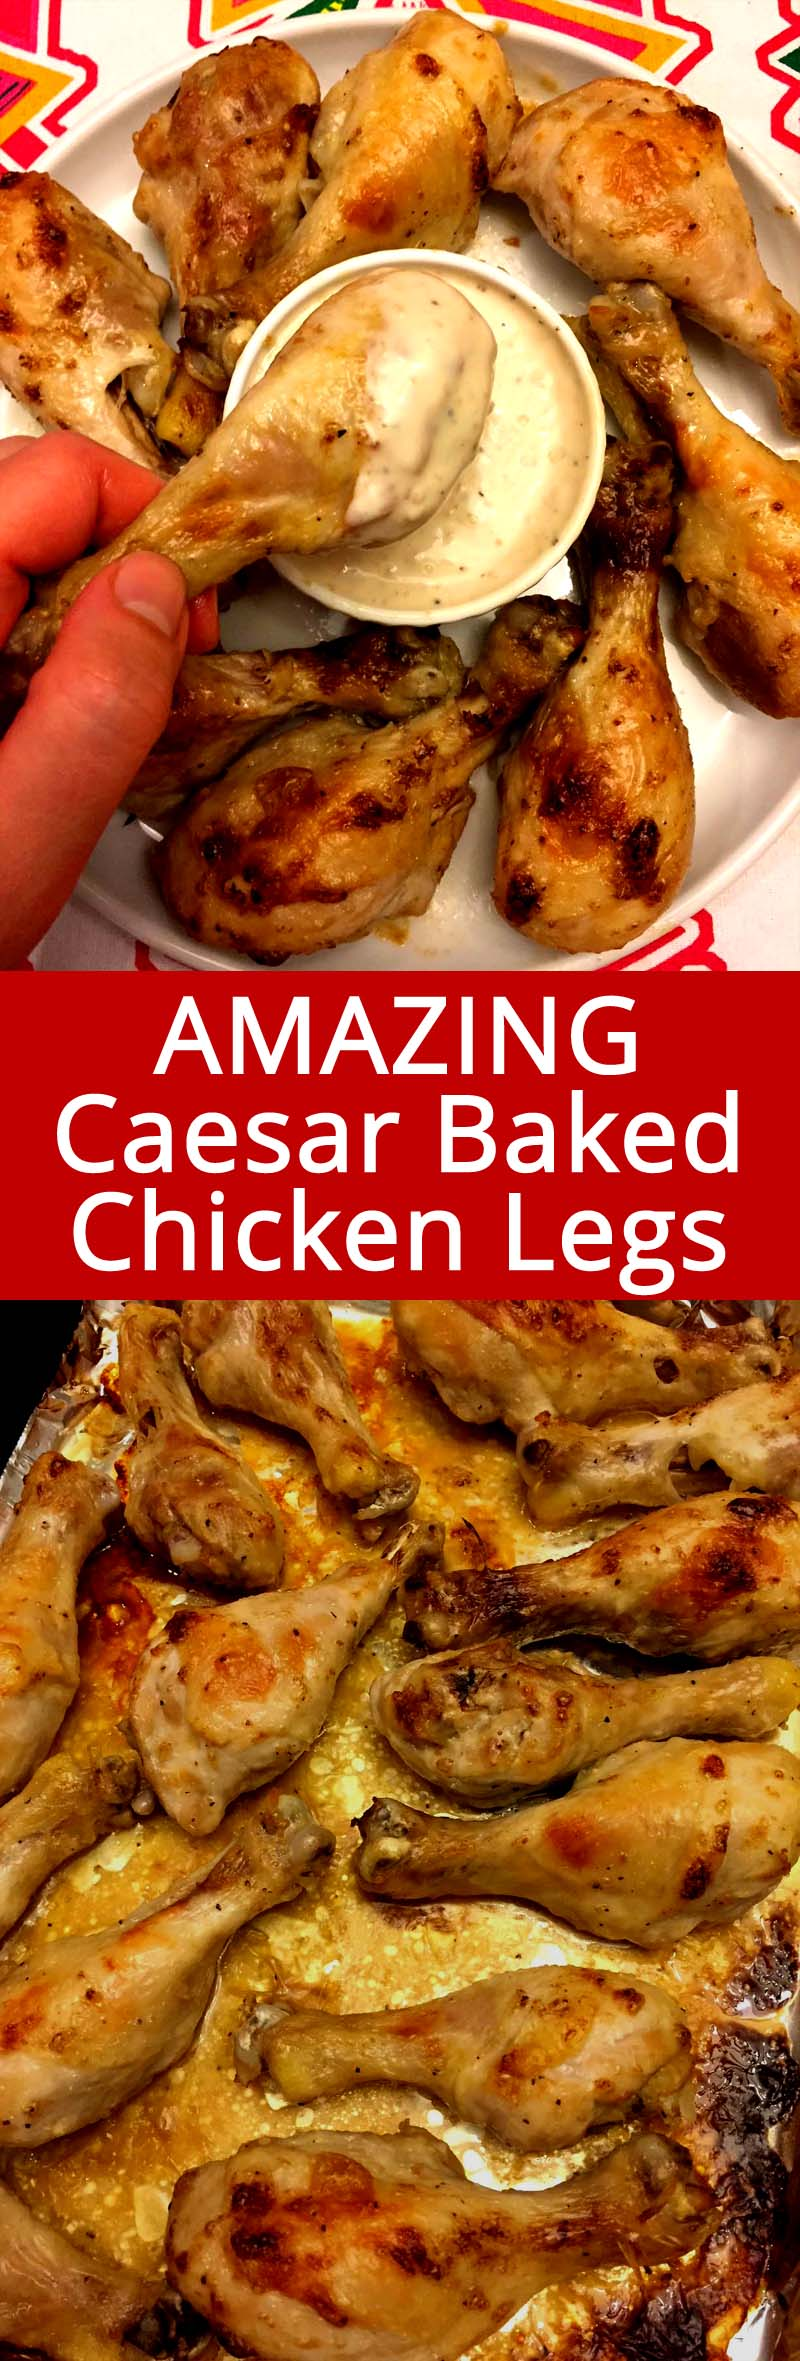 These mouthwatering baked chicken legs are marinated in Caesar dressing - genius! Who knew that Caesar dressing makes a perfect chicken marinade?